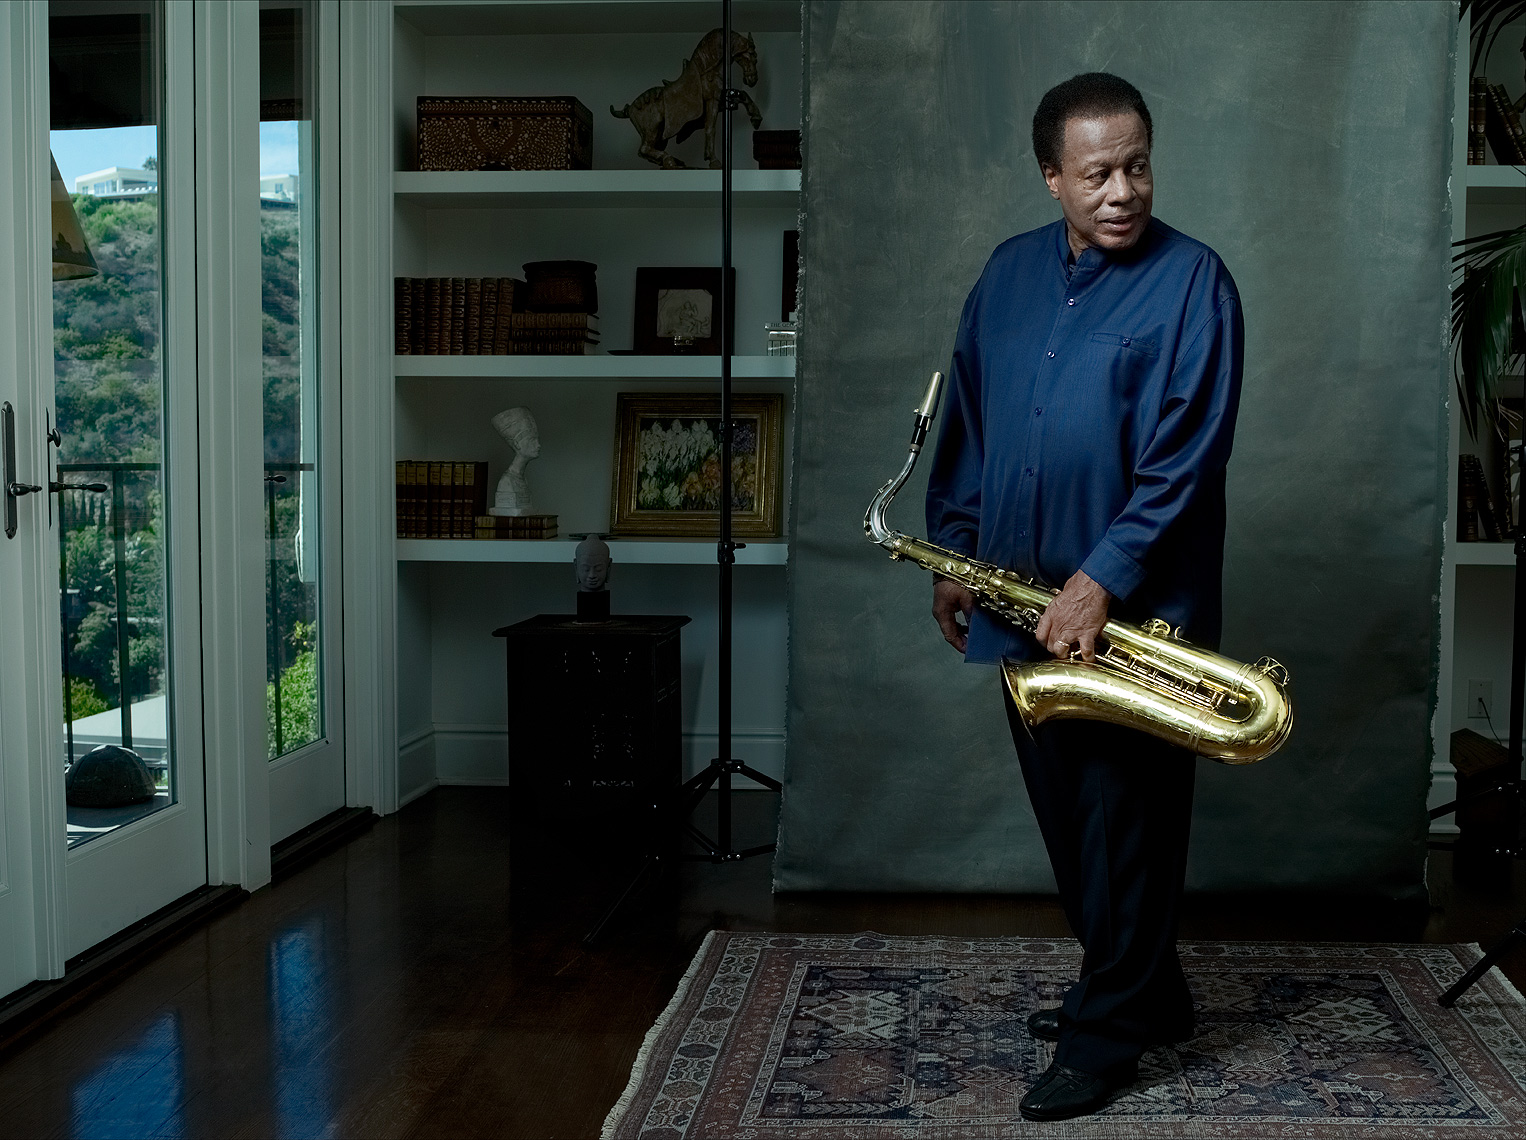 Wayne-Shorter-by-robert-ascroft.jpg